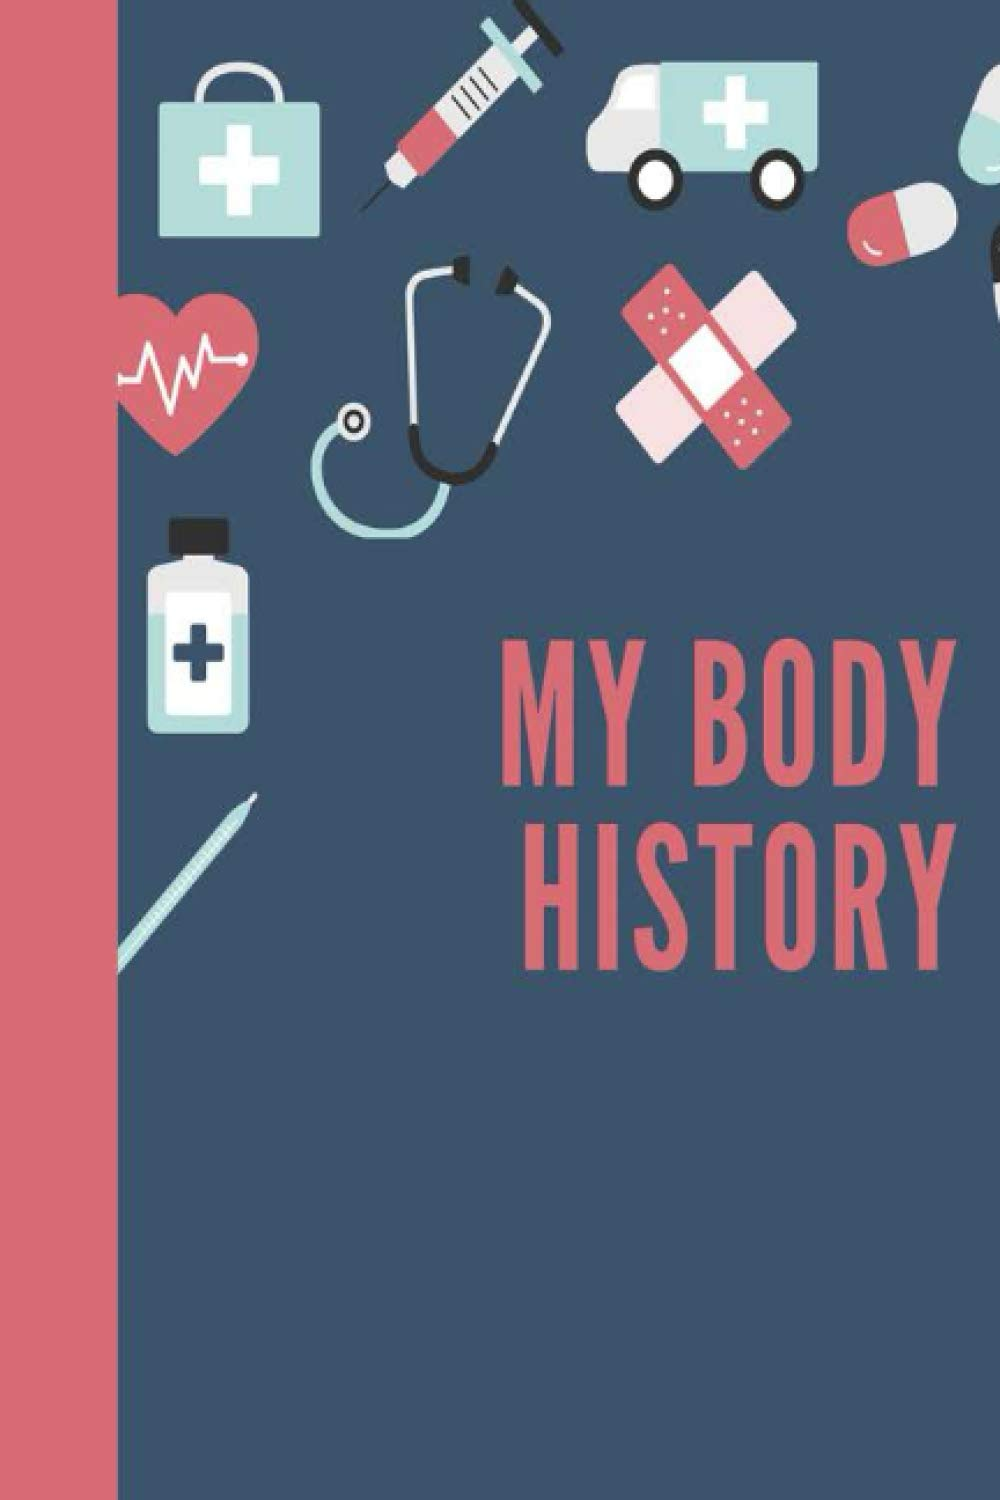 My Body History: Comprehensive medical and health record book for  organizing your medical history, health records, and emergency information:  Sykes, Gary J.: 9798691657771: Amazon.com: Books